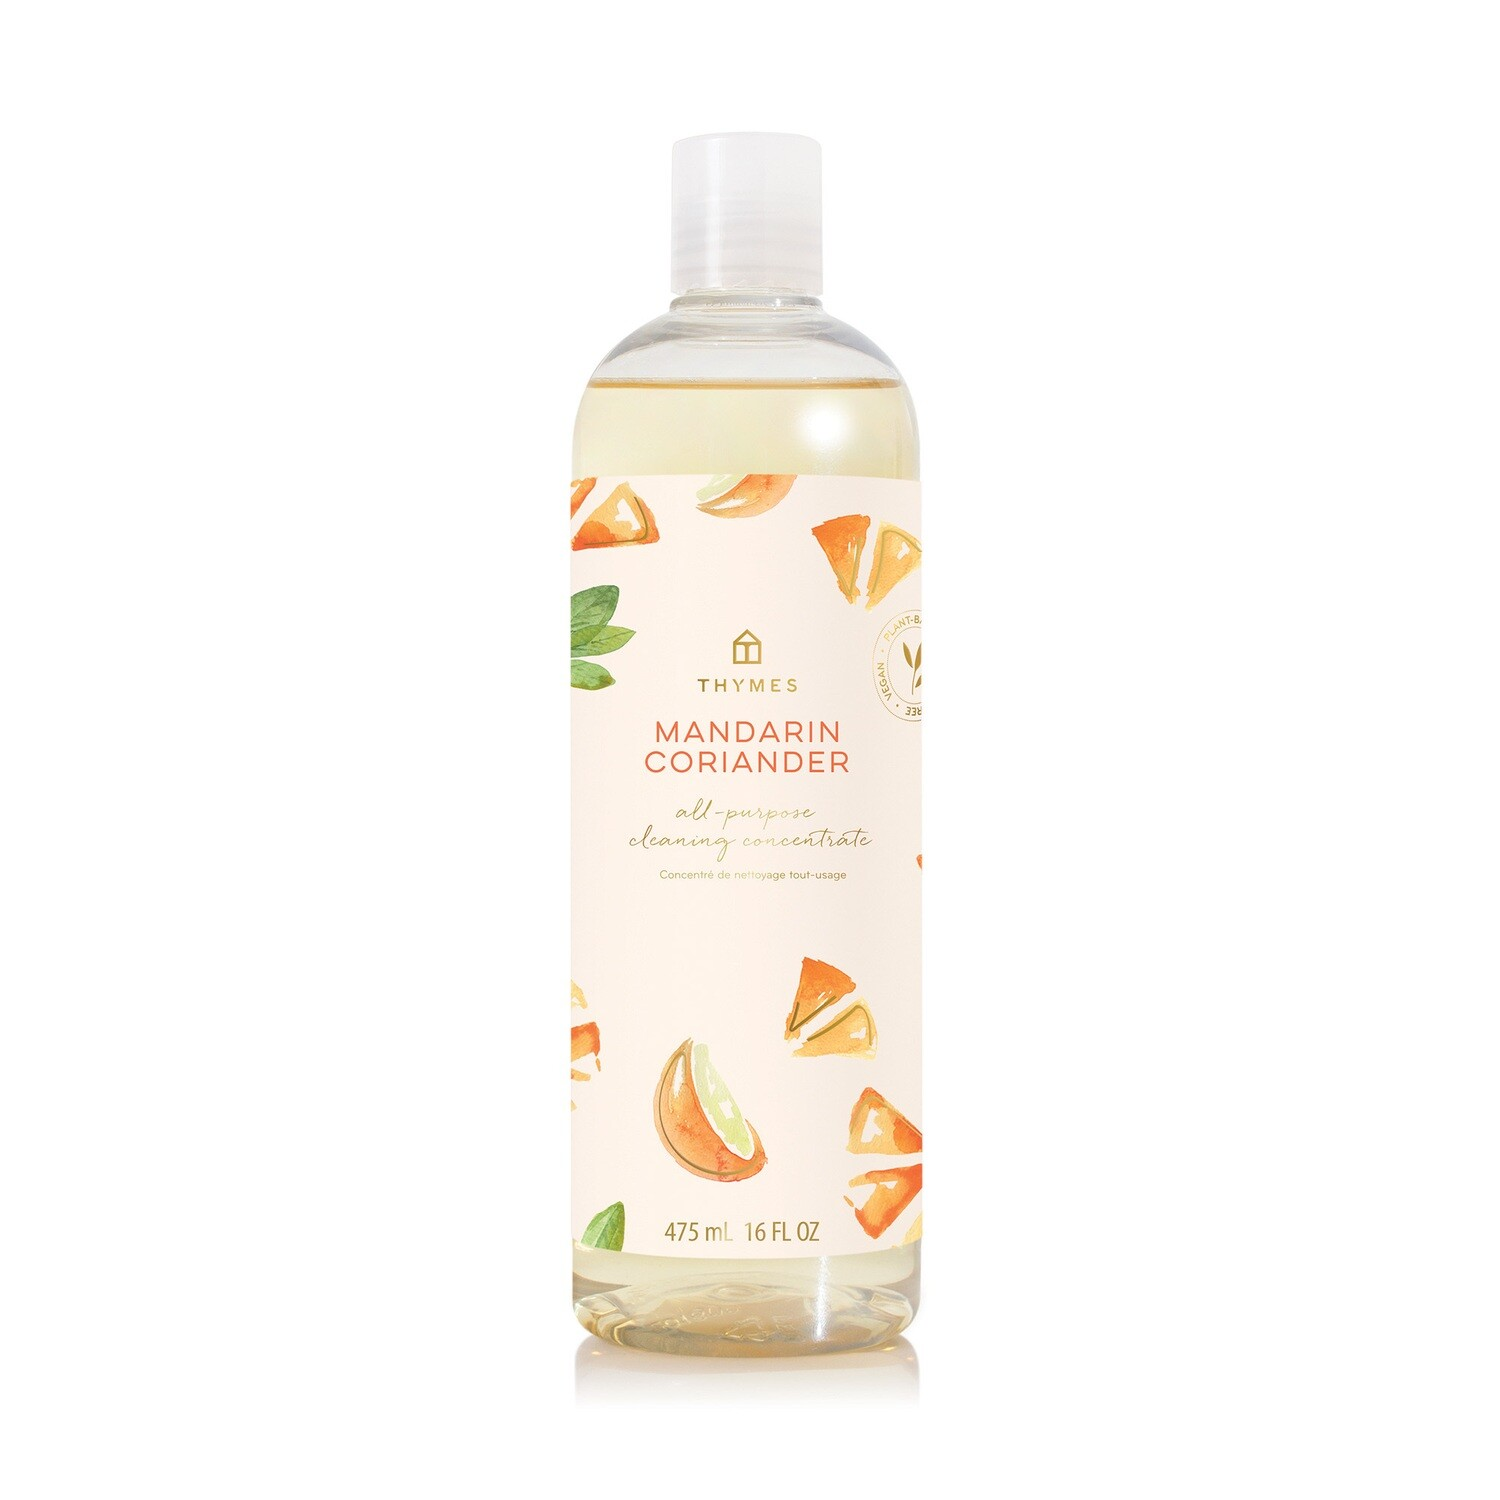 Mandarin Coriander All-Purpose Cleaning Concentrate